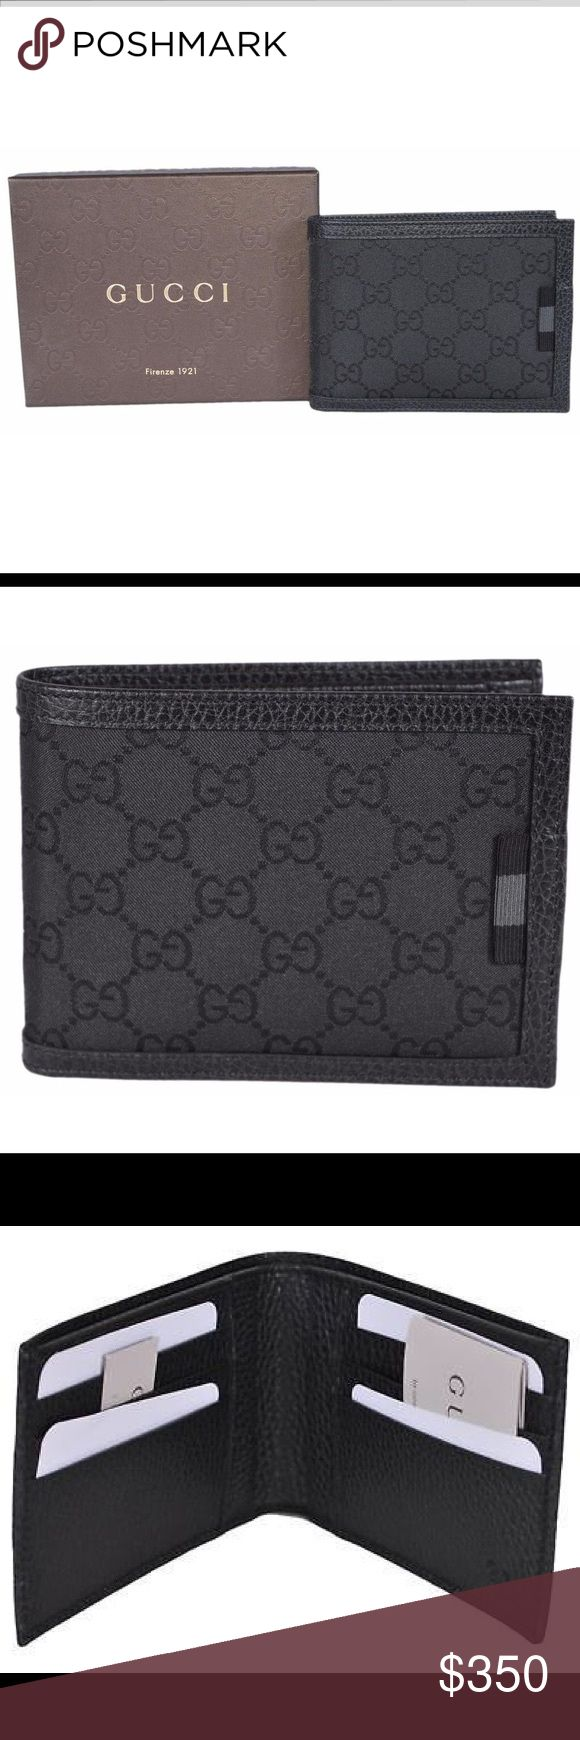 Authentic New Gucci men's wallet Authentic New with box. Men's Gucci guccissima bifold wallet. Leather/canvas Gucci Accessories Money Clips